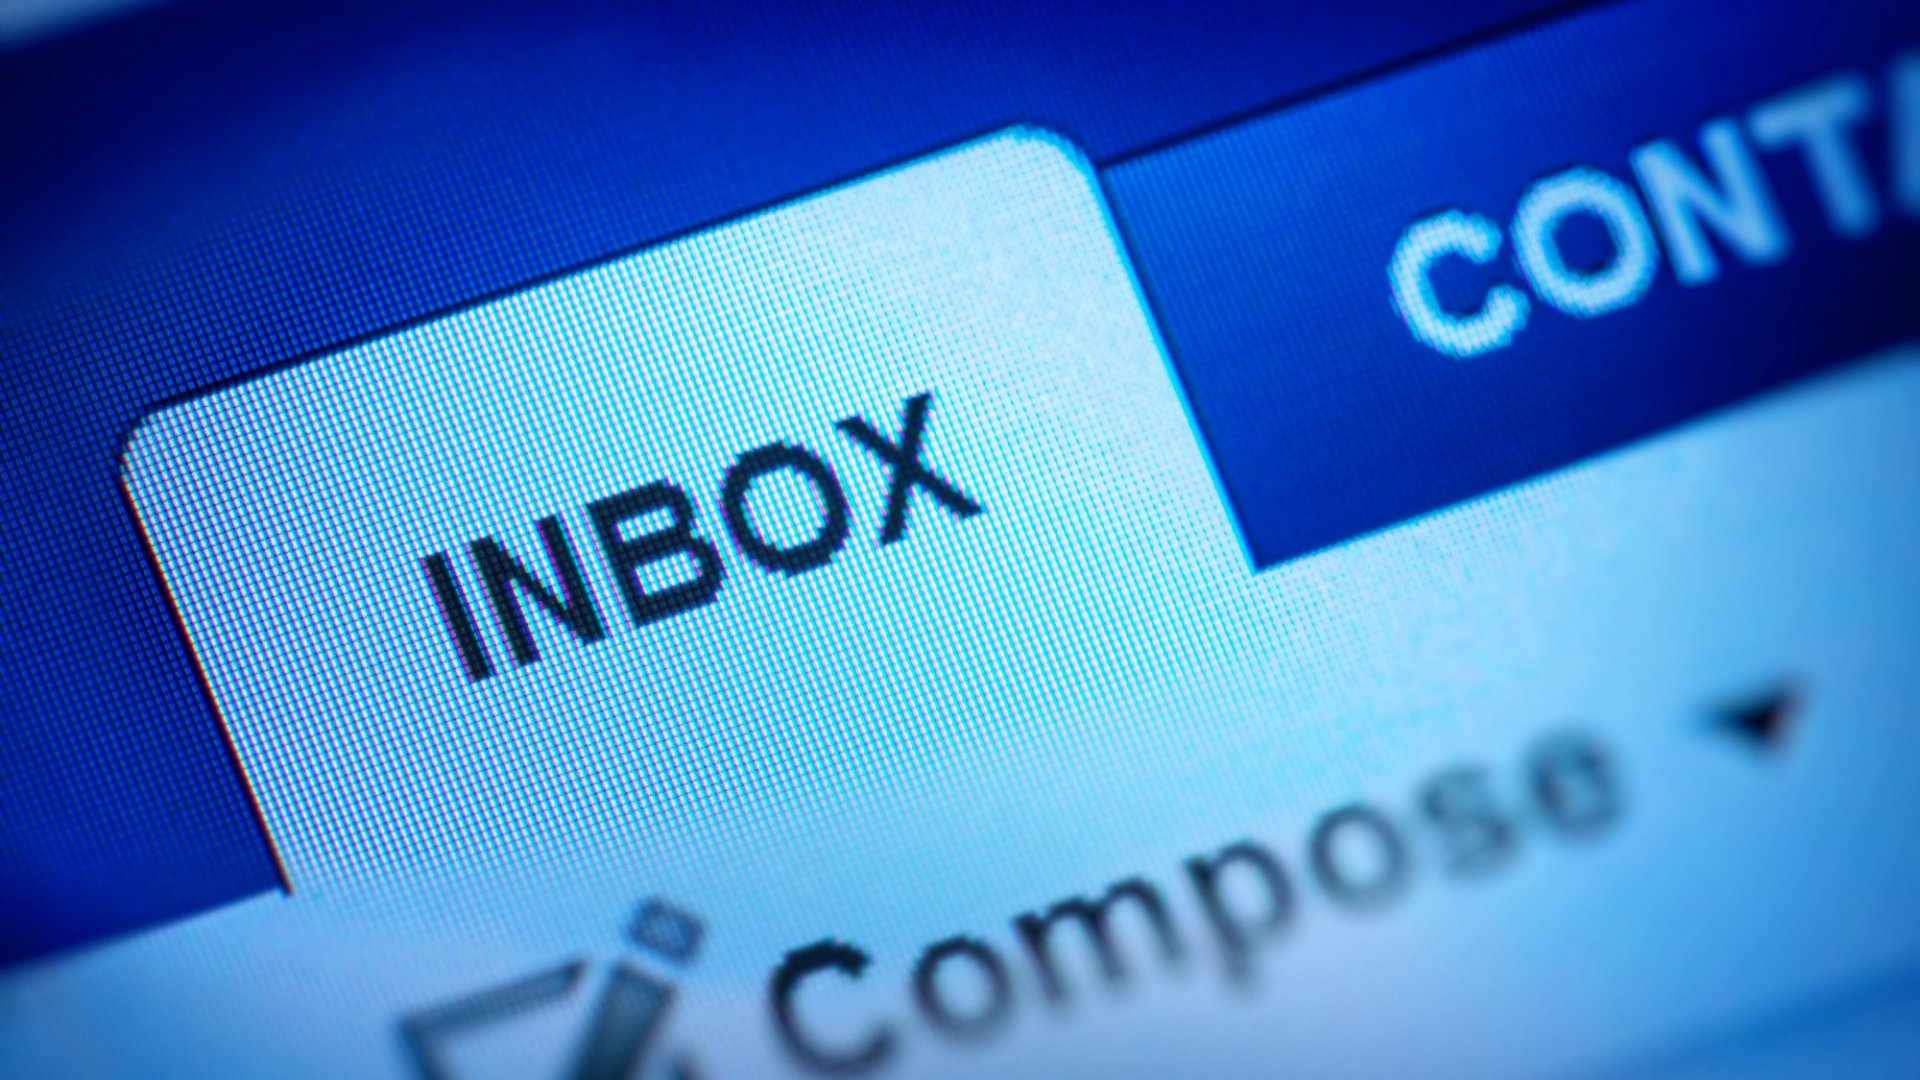 Quickly Reach 'Inbox Zero' With These 5 Simple Steps